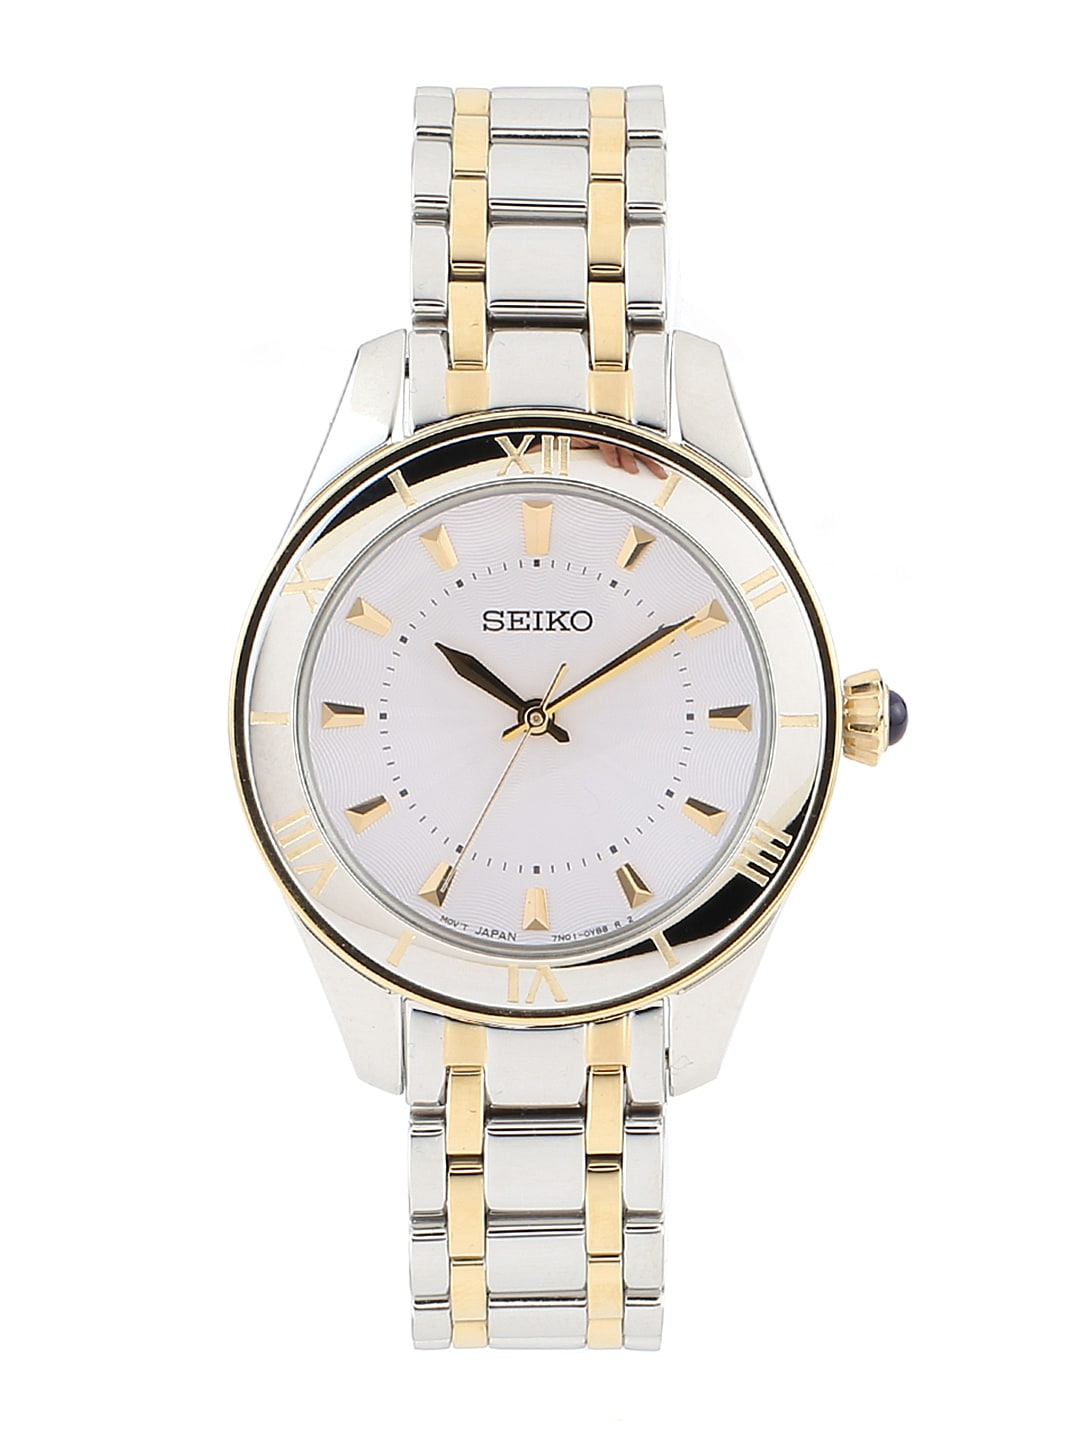 SEIKO Women Silver-Toned Dial Watch SRZ432P1